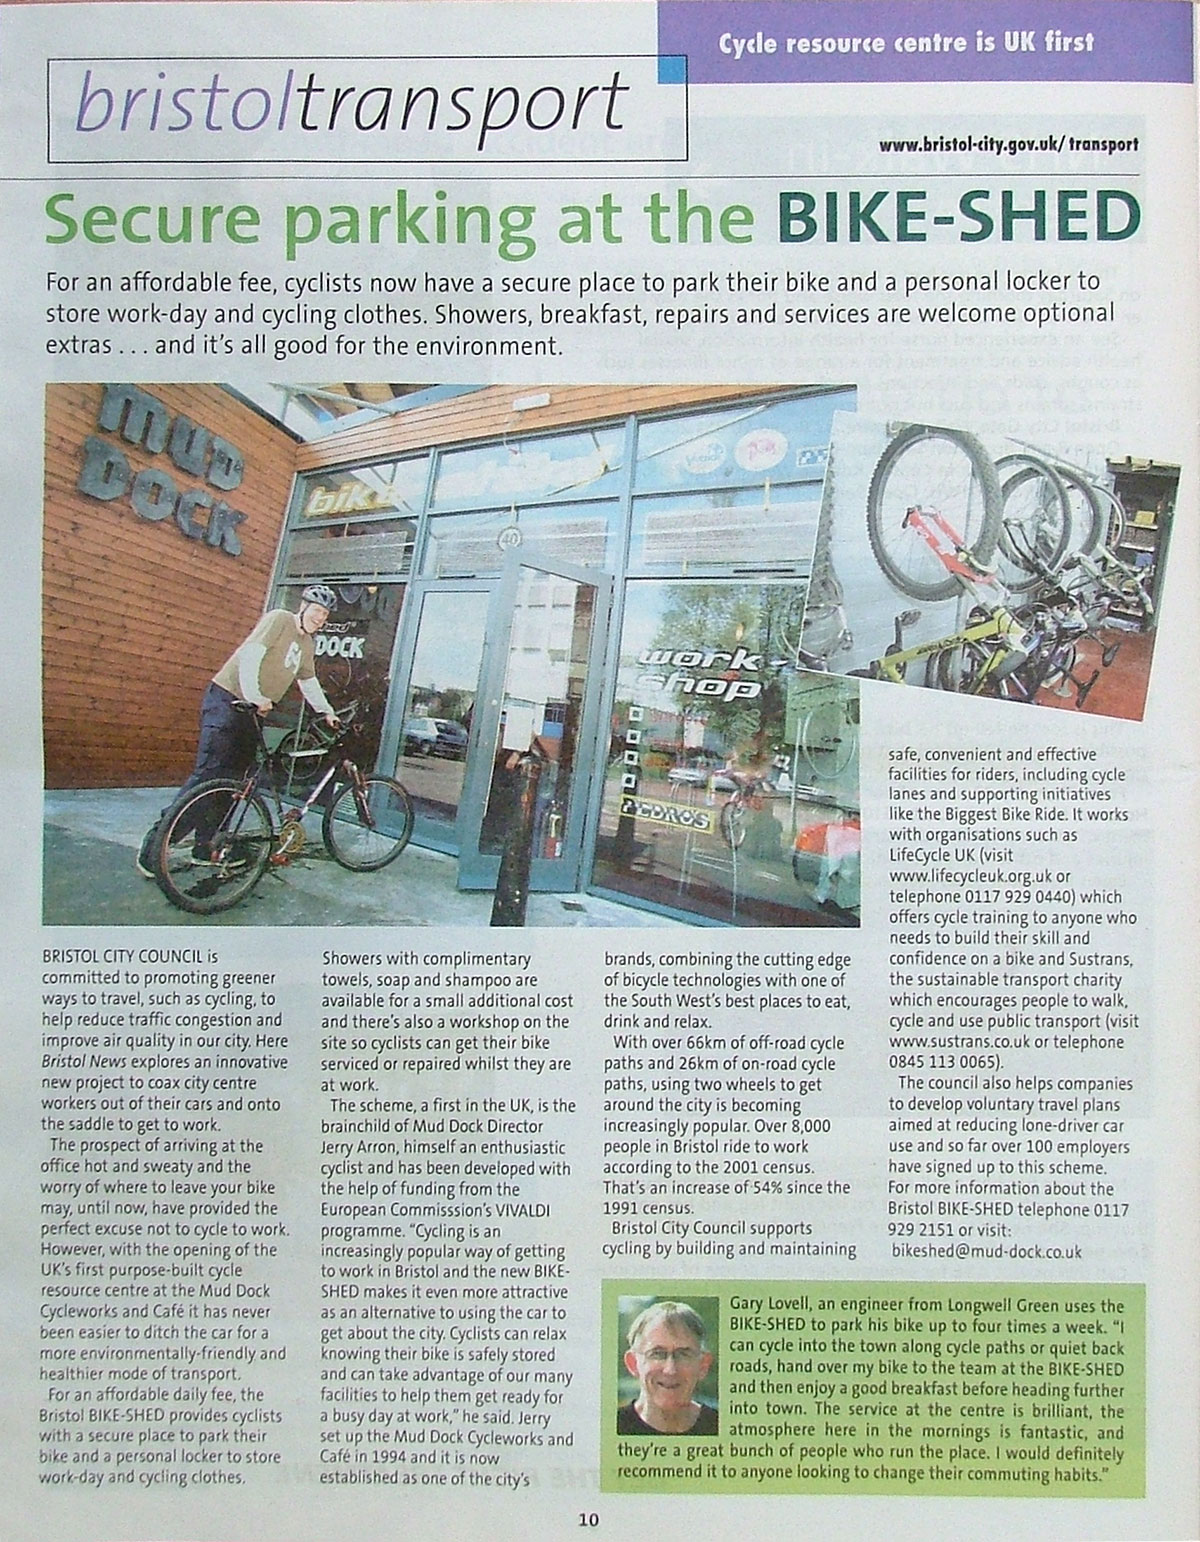 Bike Shed article, 2003